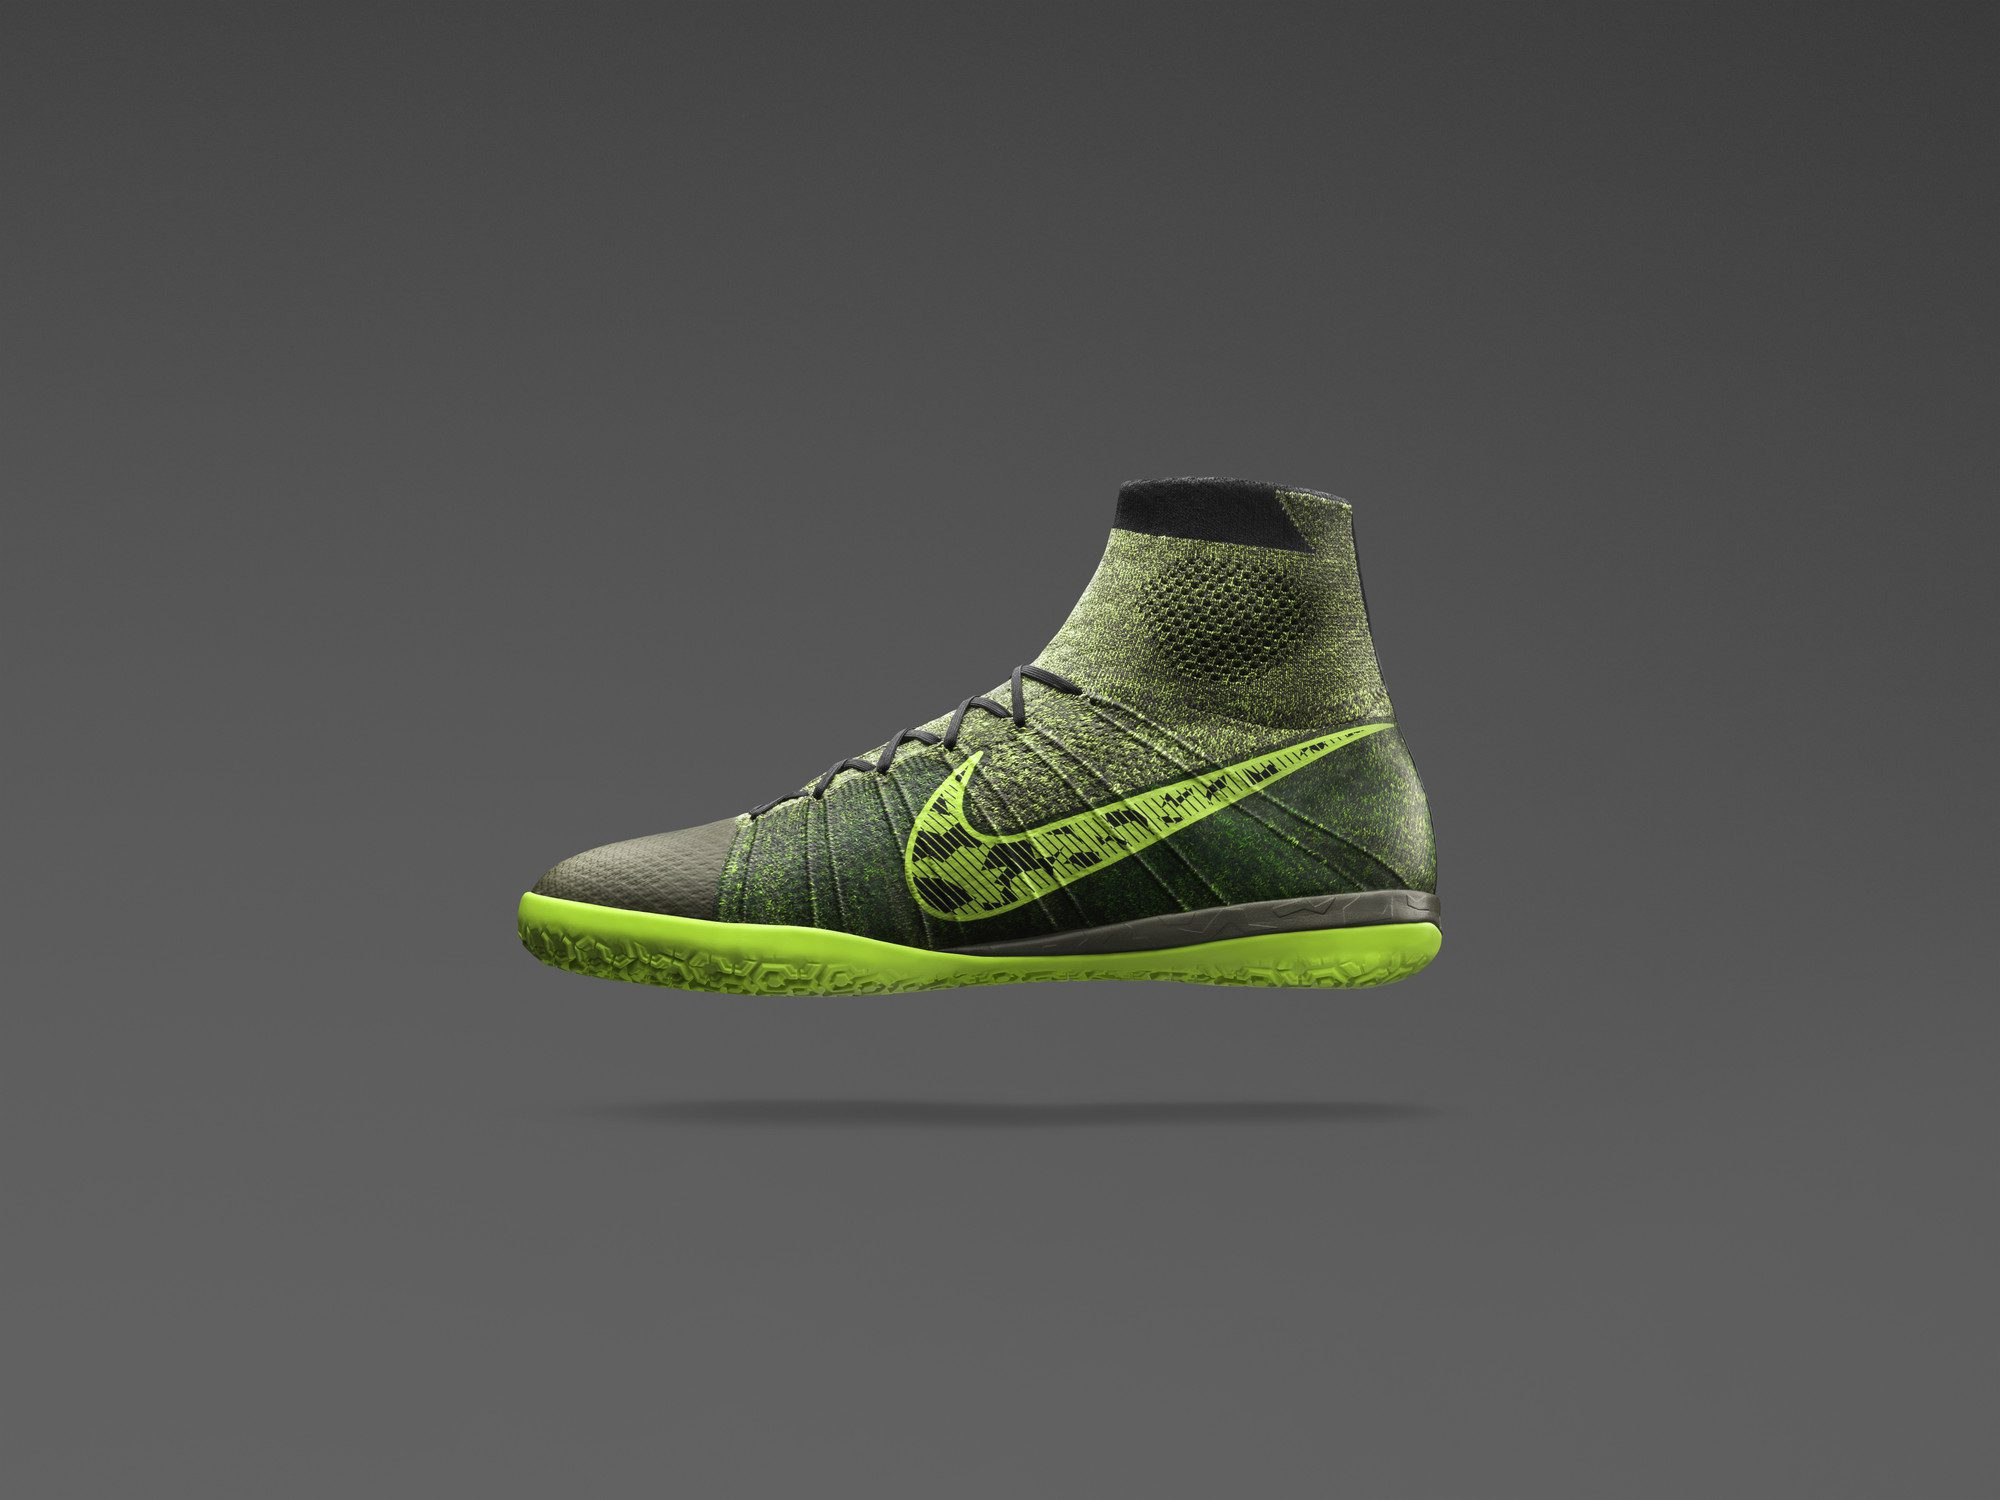 c89a24590357 BMF Soccer  Nike Elastico Superfly - Hardwood and Hollywood